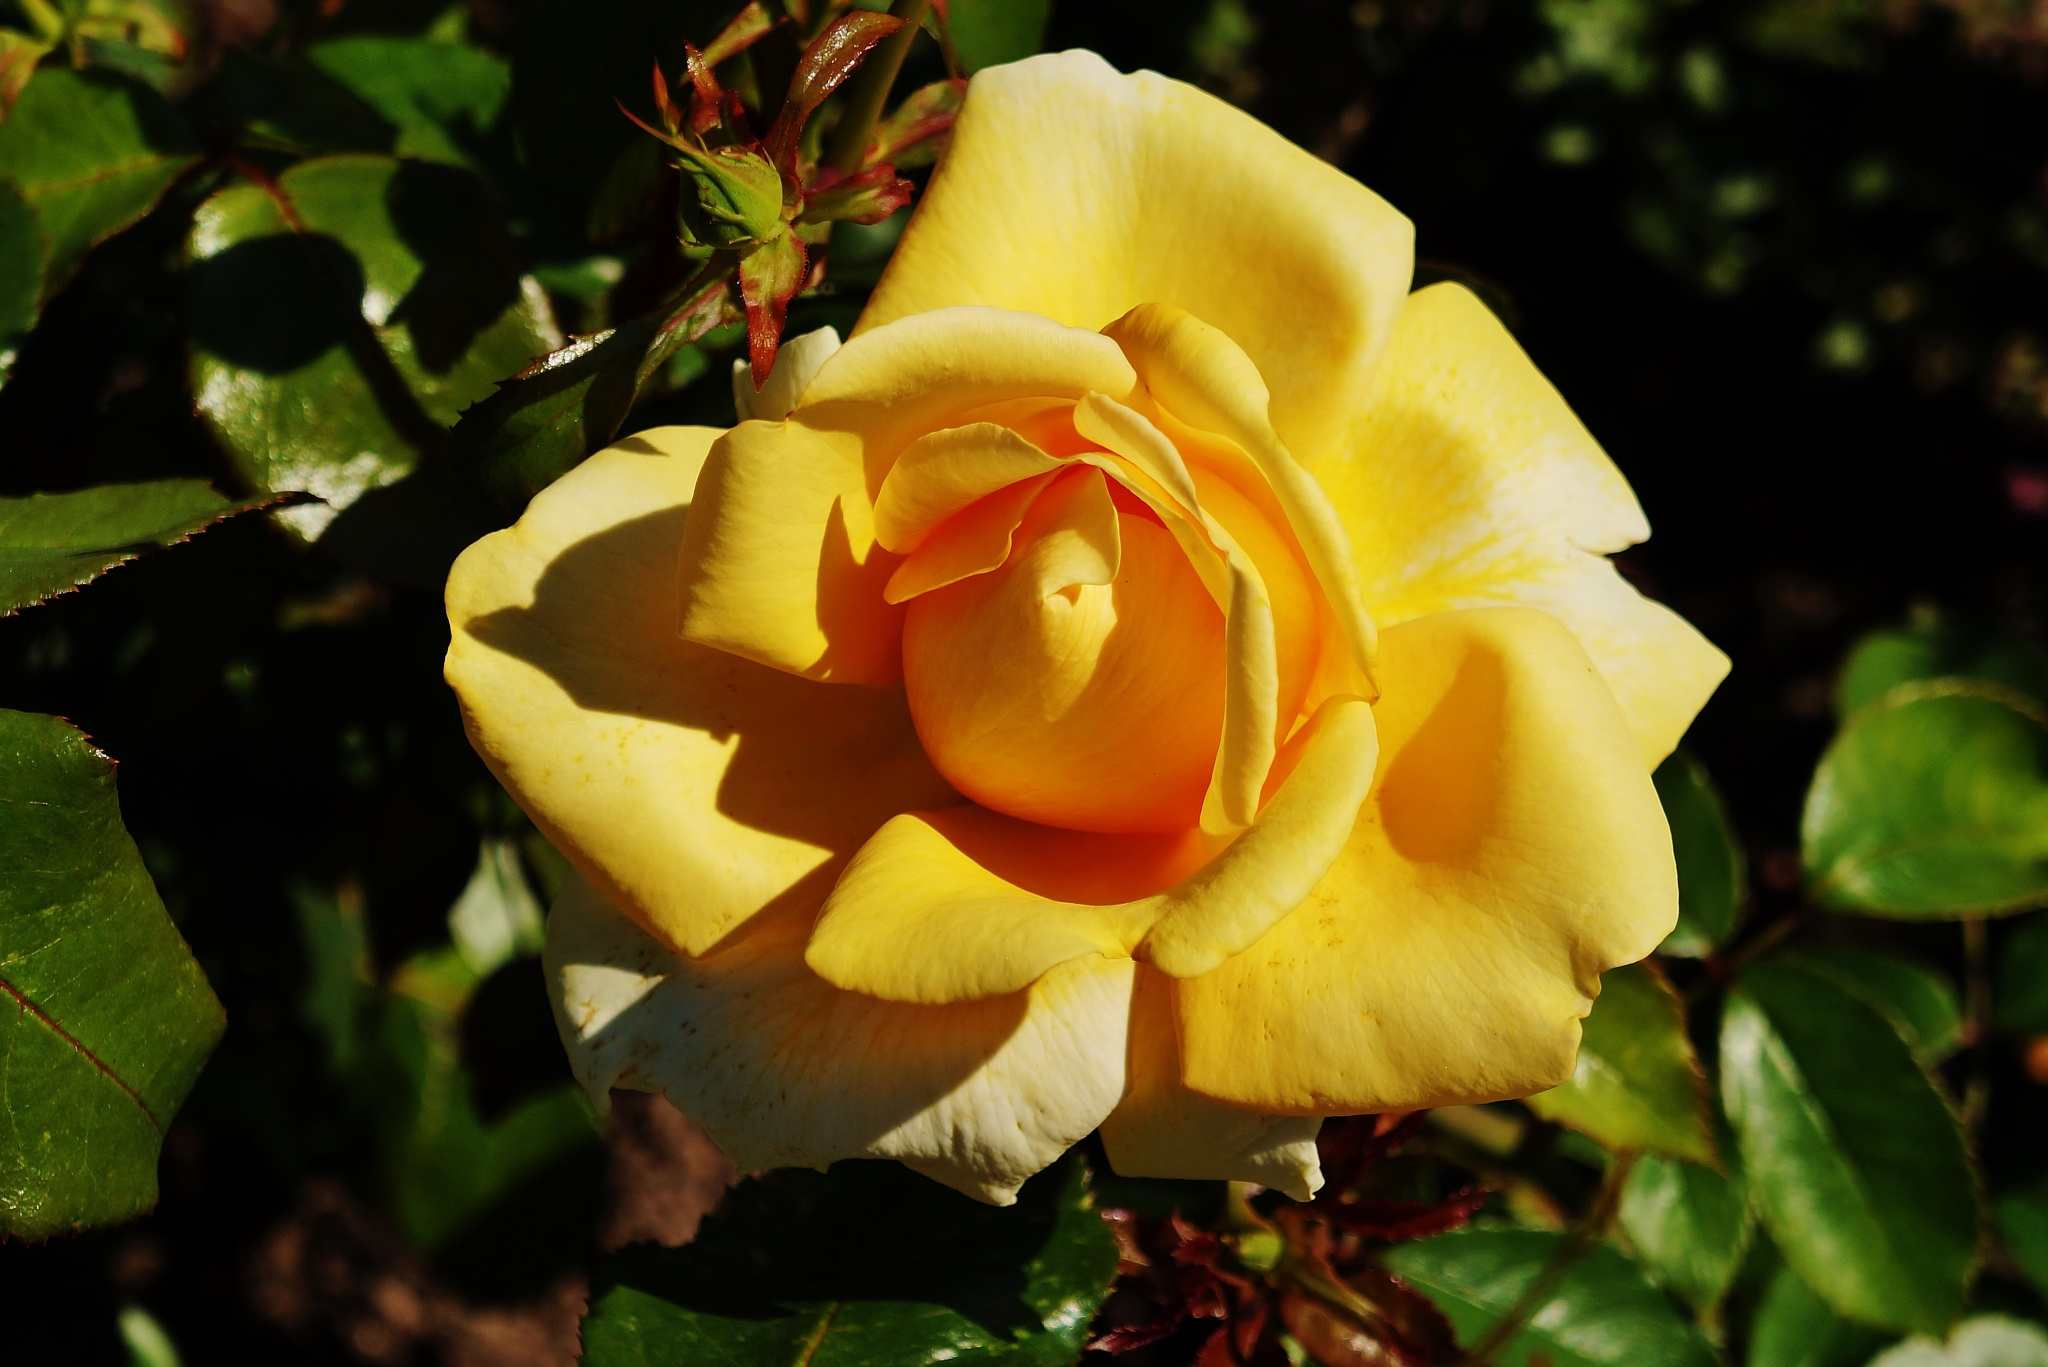 Yellow rose by rolf persson